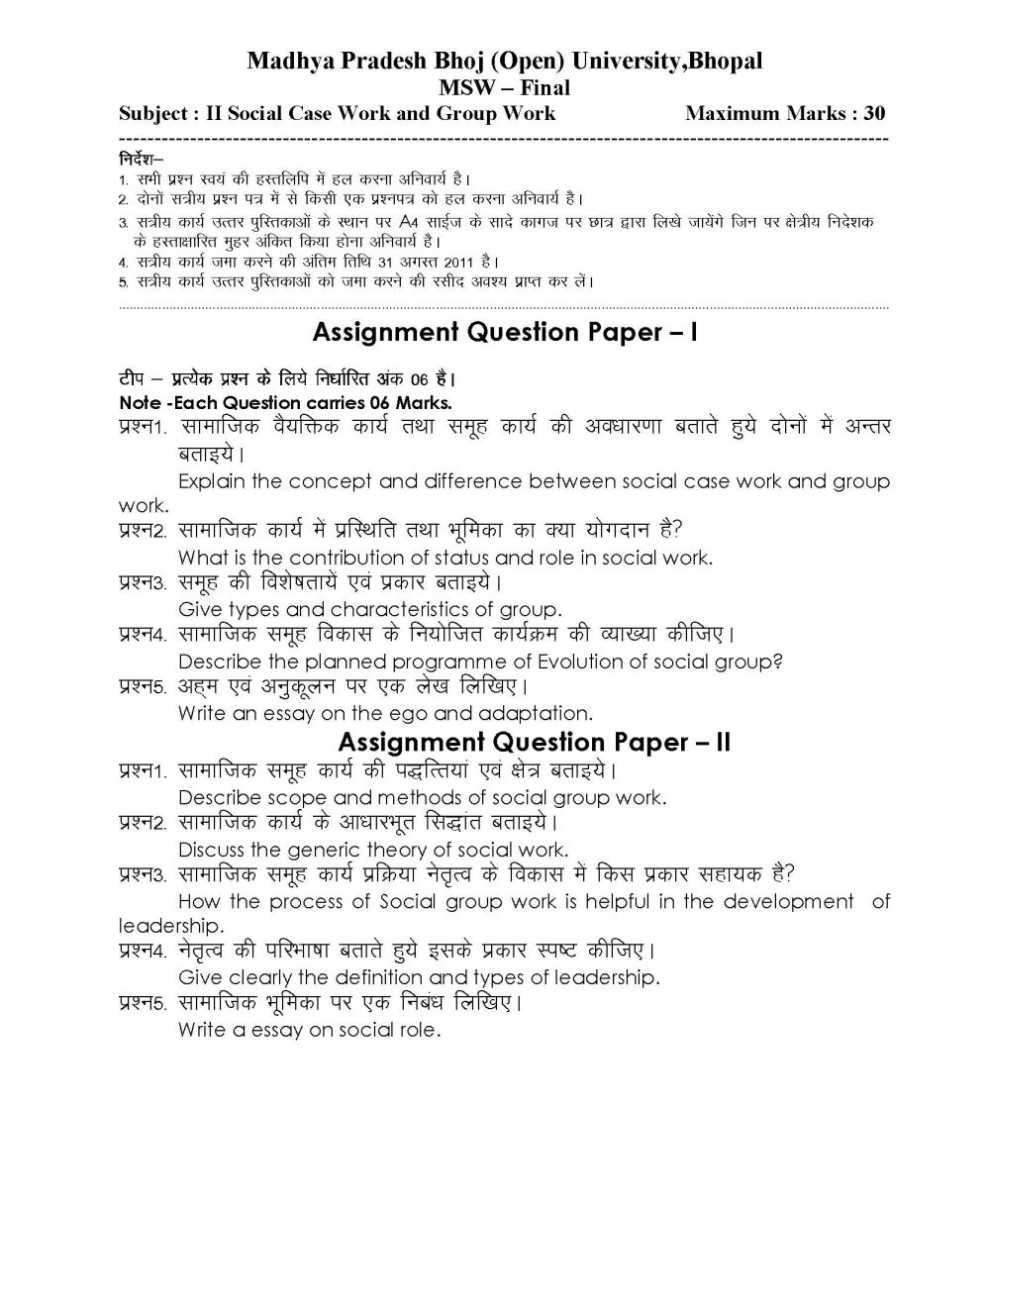 012 Bhoj University Bhopal Msw Definition Essays Surprising Essay Examples Family Heroism Pdf Full